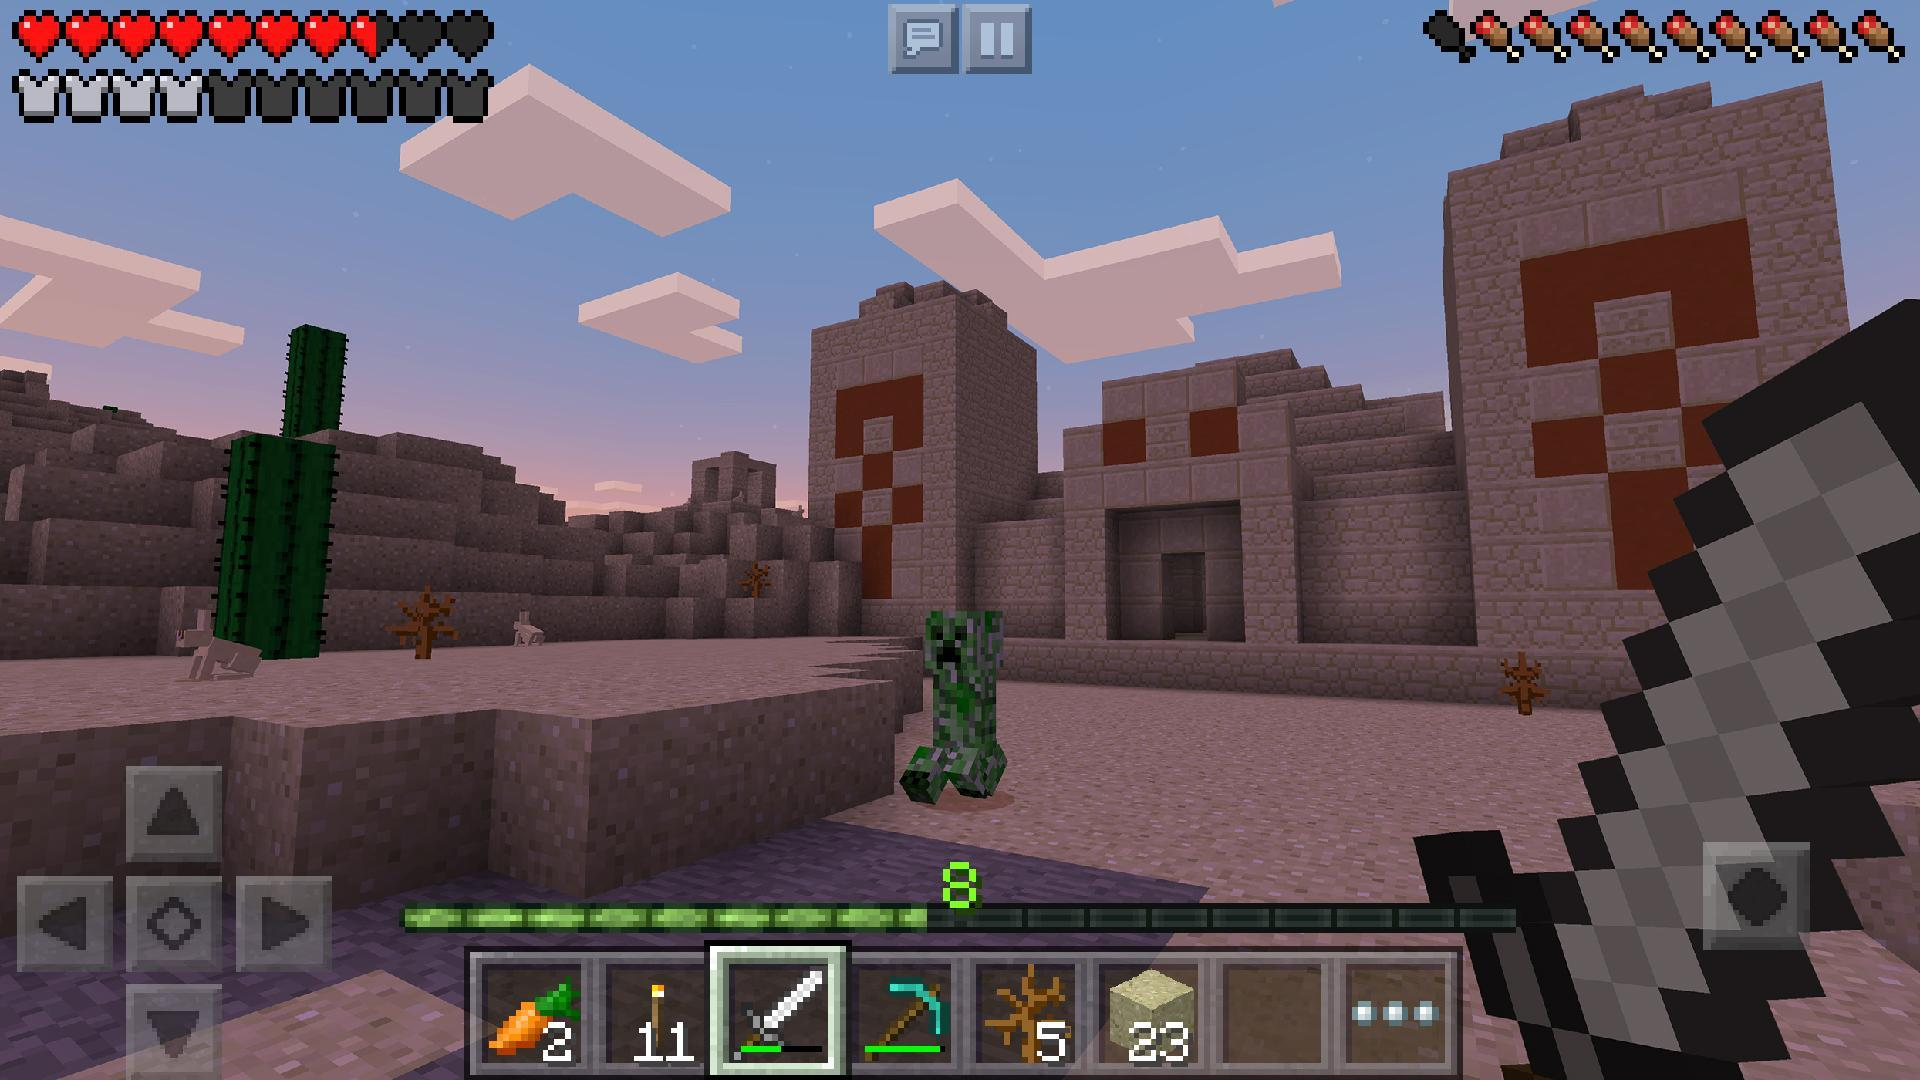 Minecraft APK Download v1.14.4.2 Free, Check How To Install On Your Phone